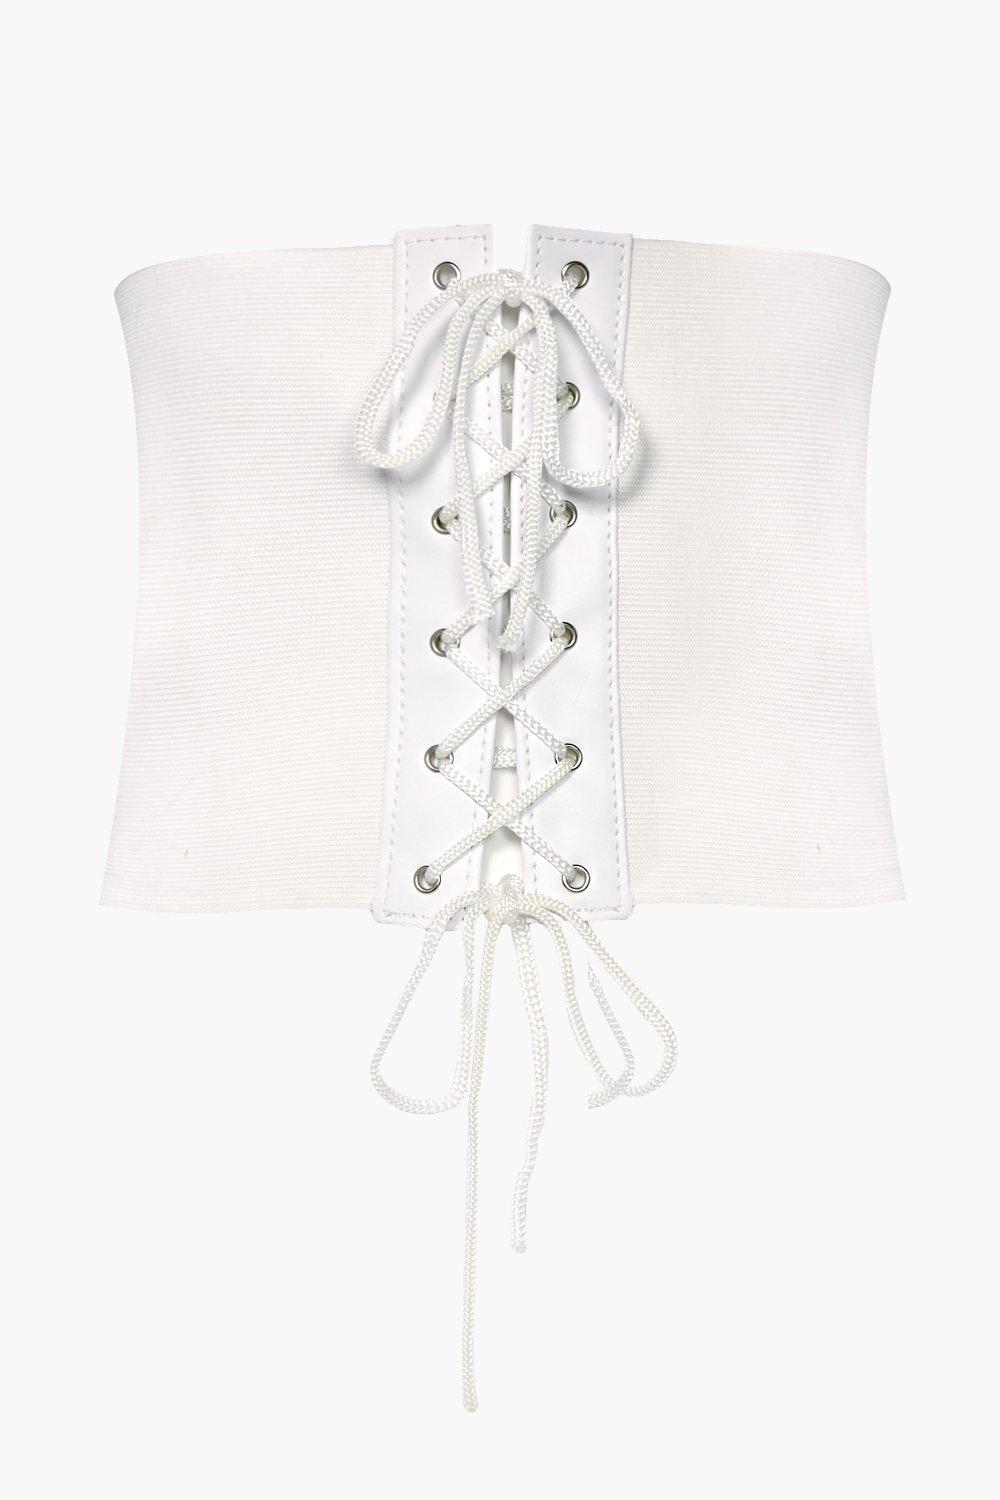 Lace Up Stretch Corset Belt - white - Harriet Lace